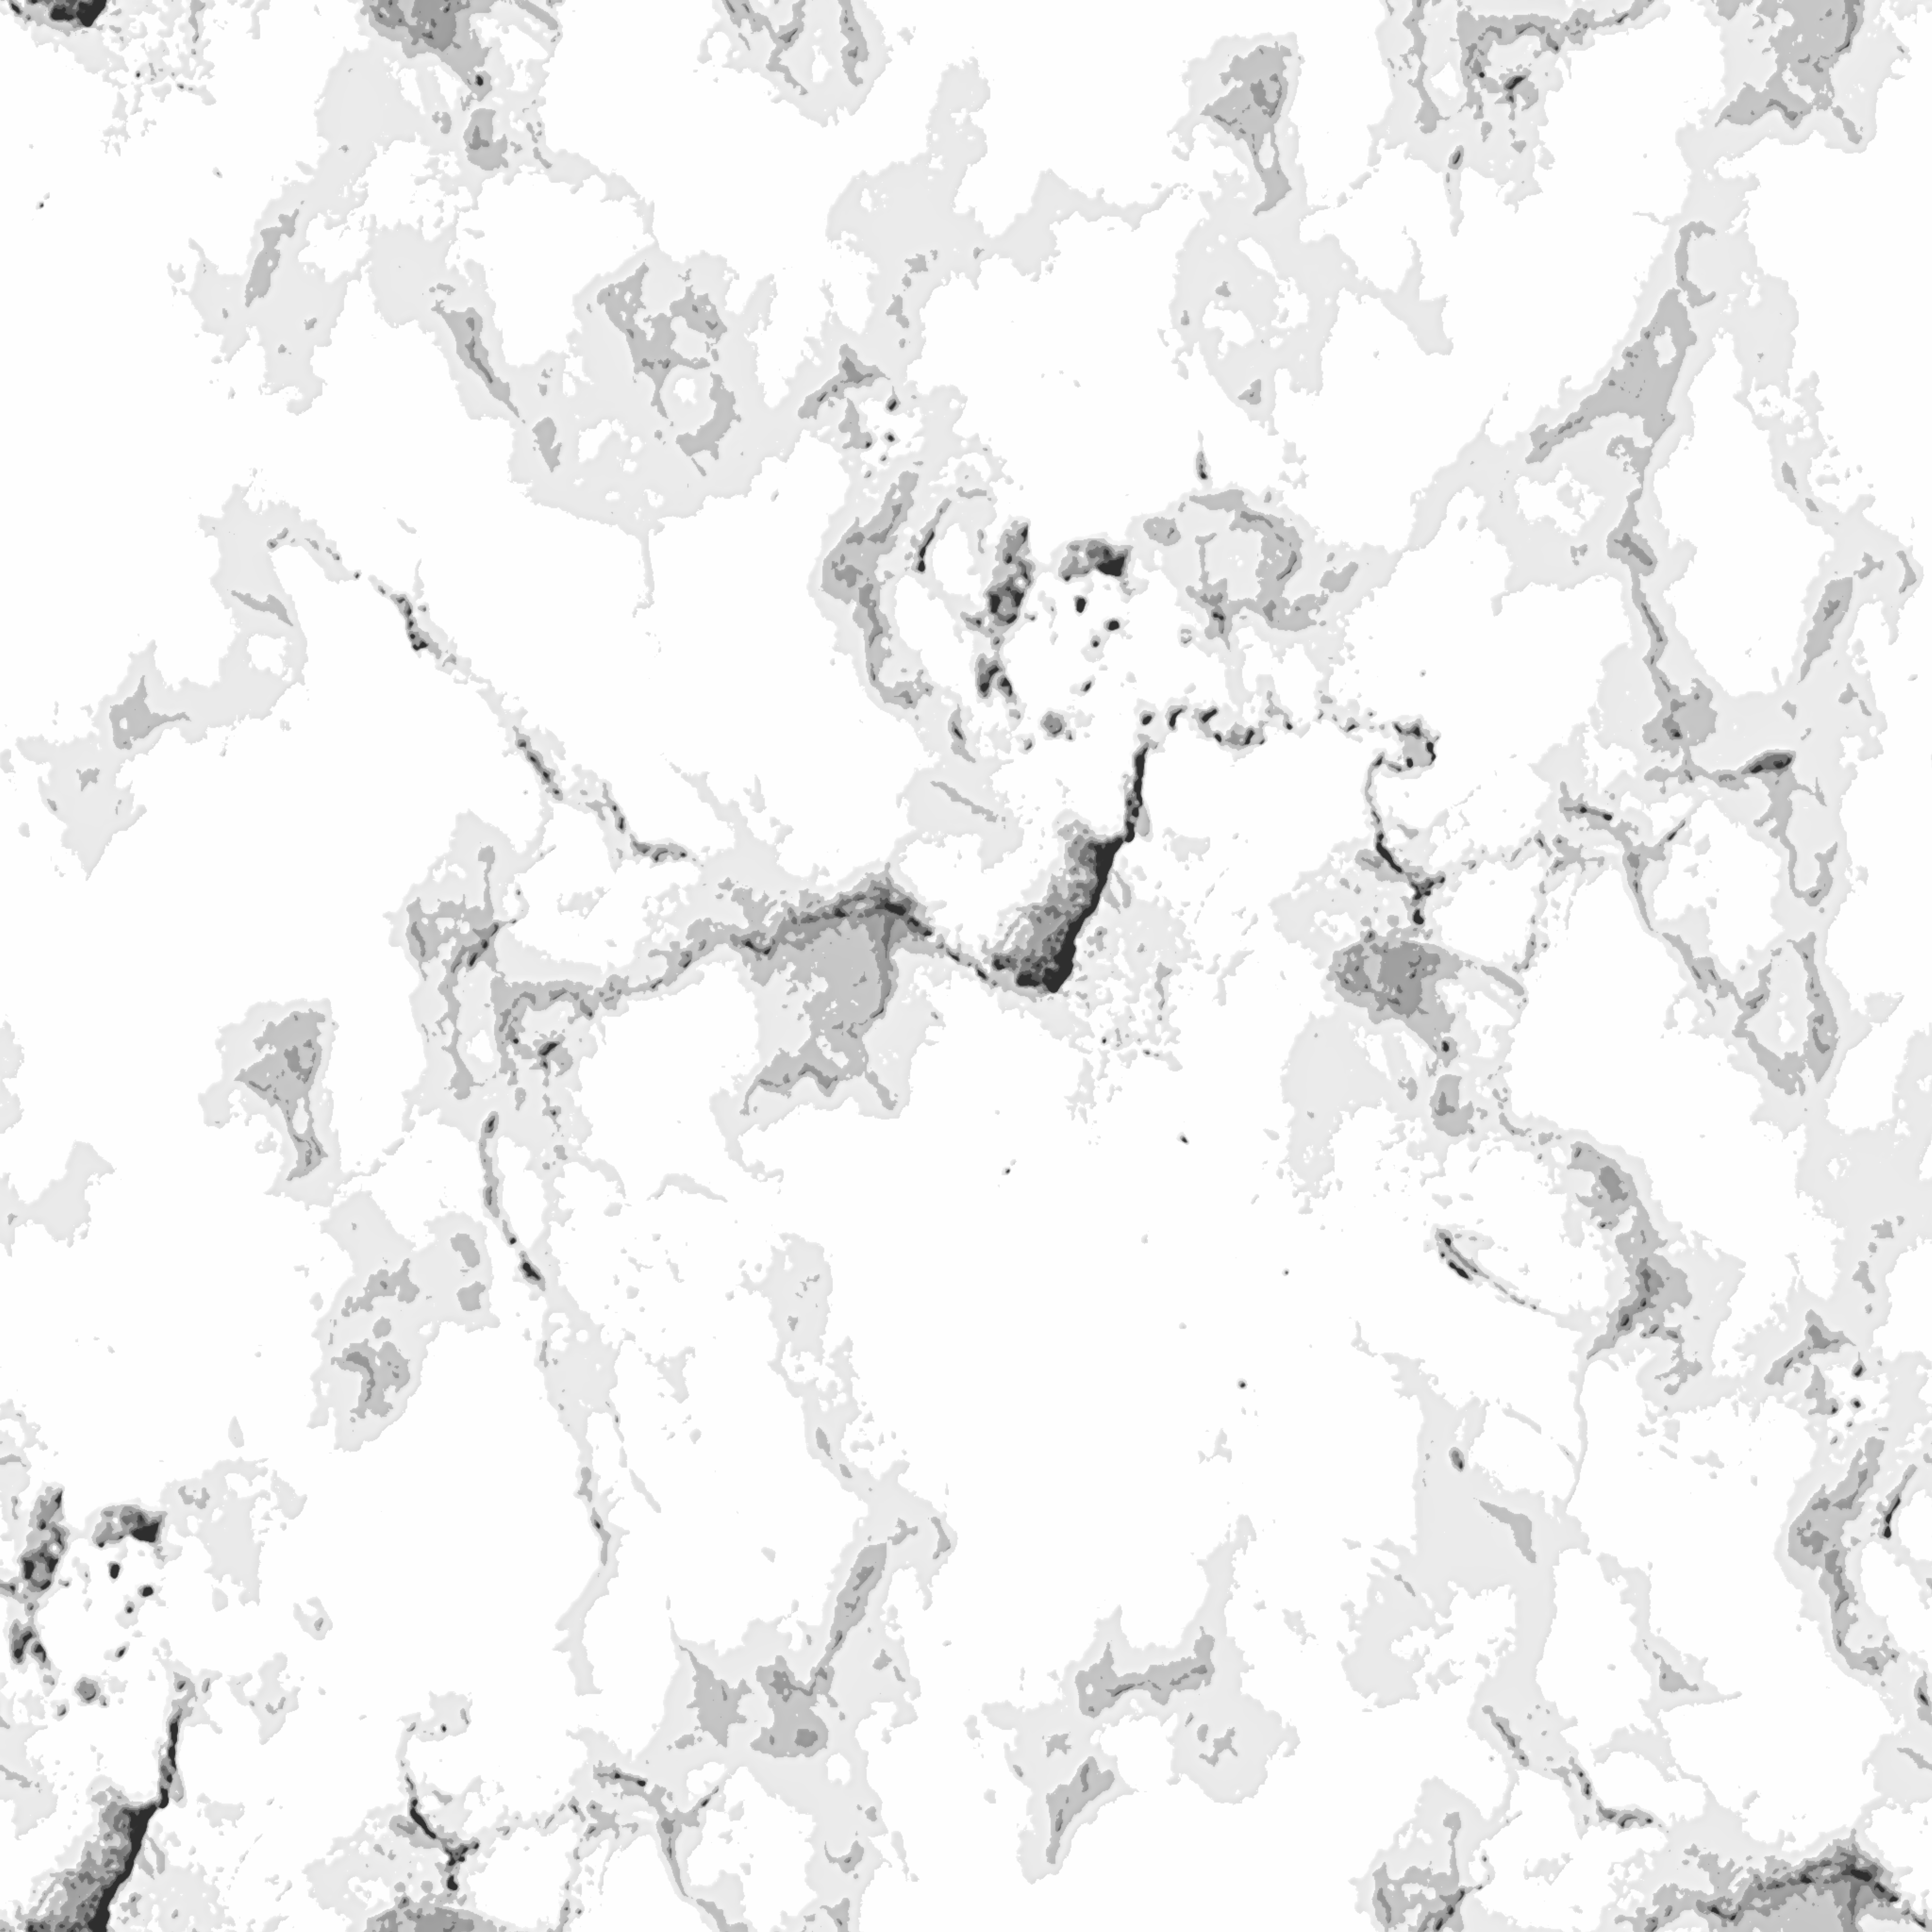 4k Seamless White Marble Stone Textures Public Domain Opengameart Org